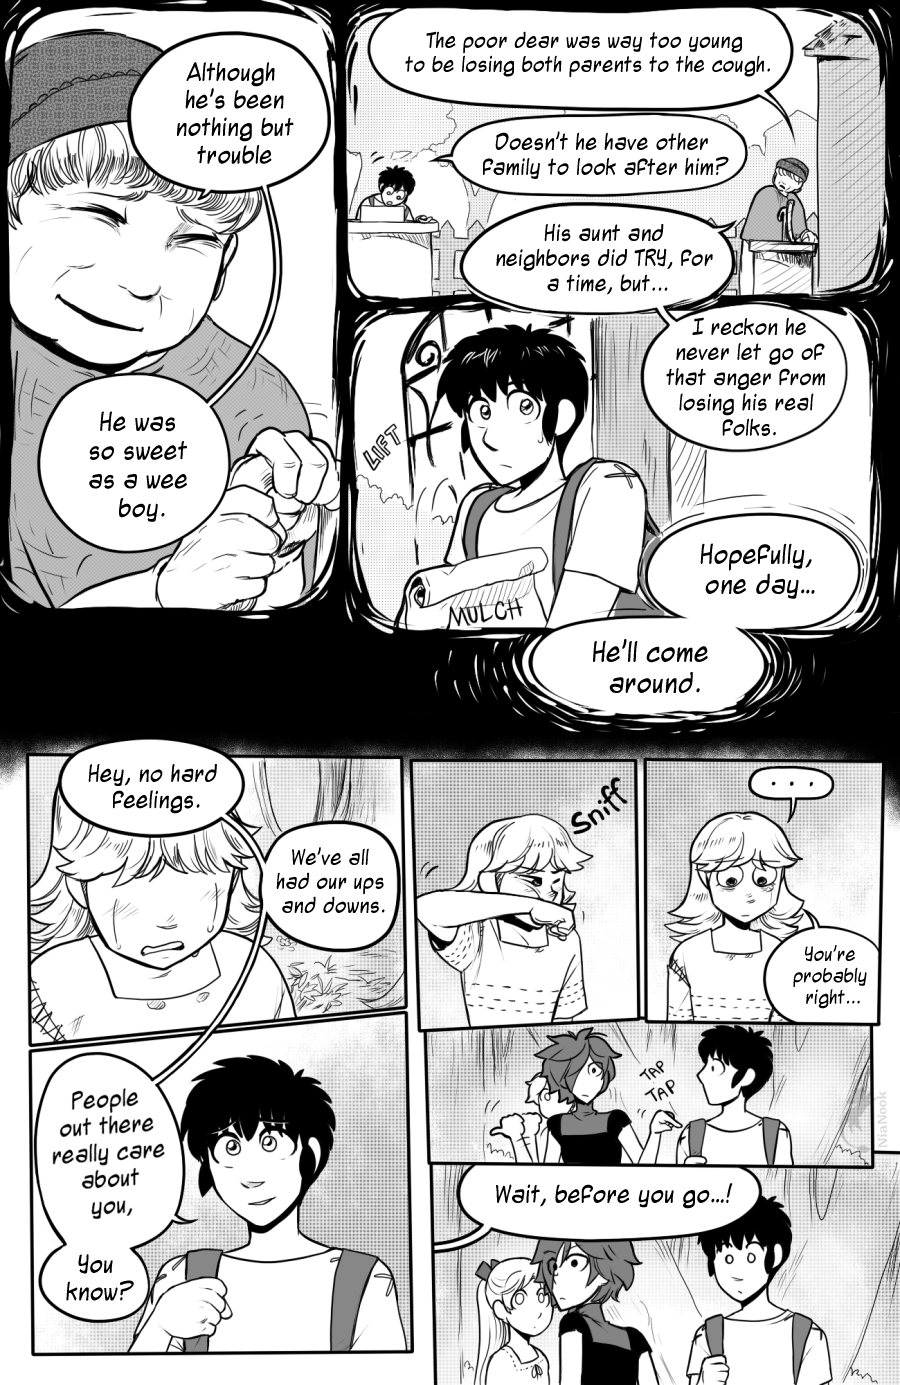 Page 36 (Book 5)